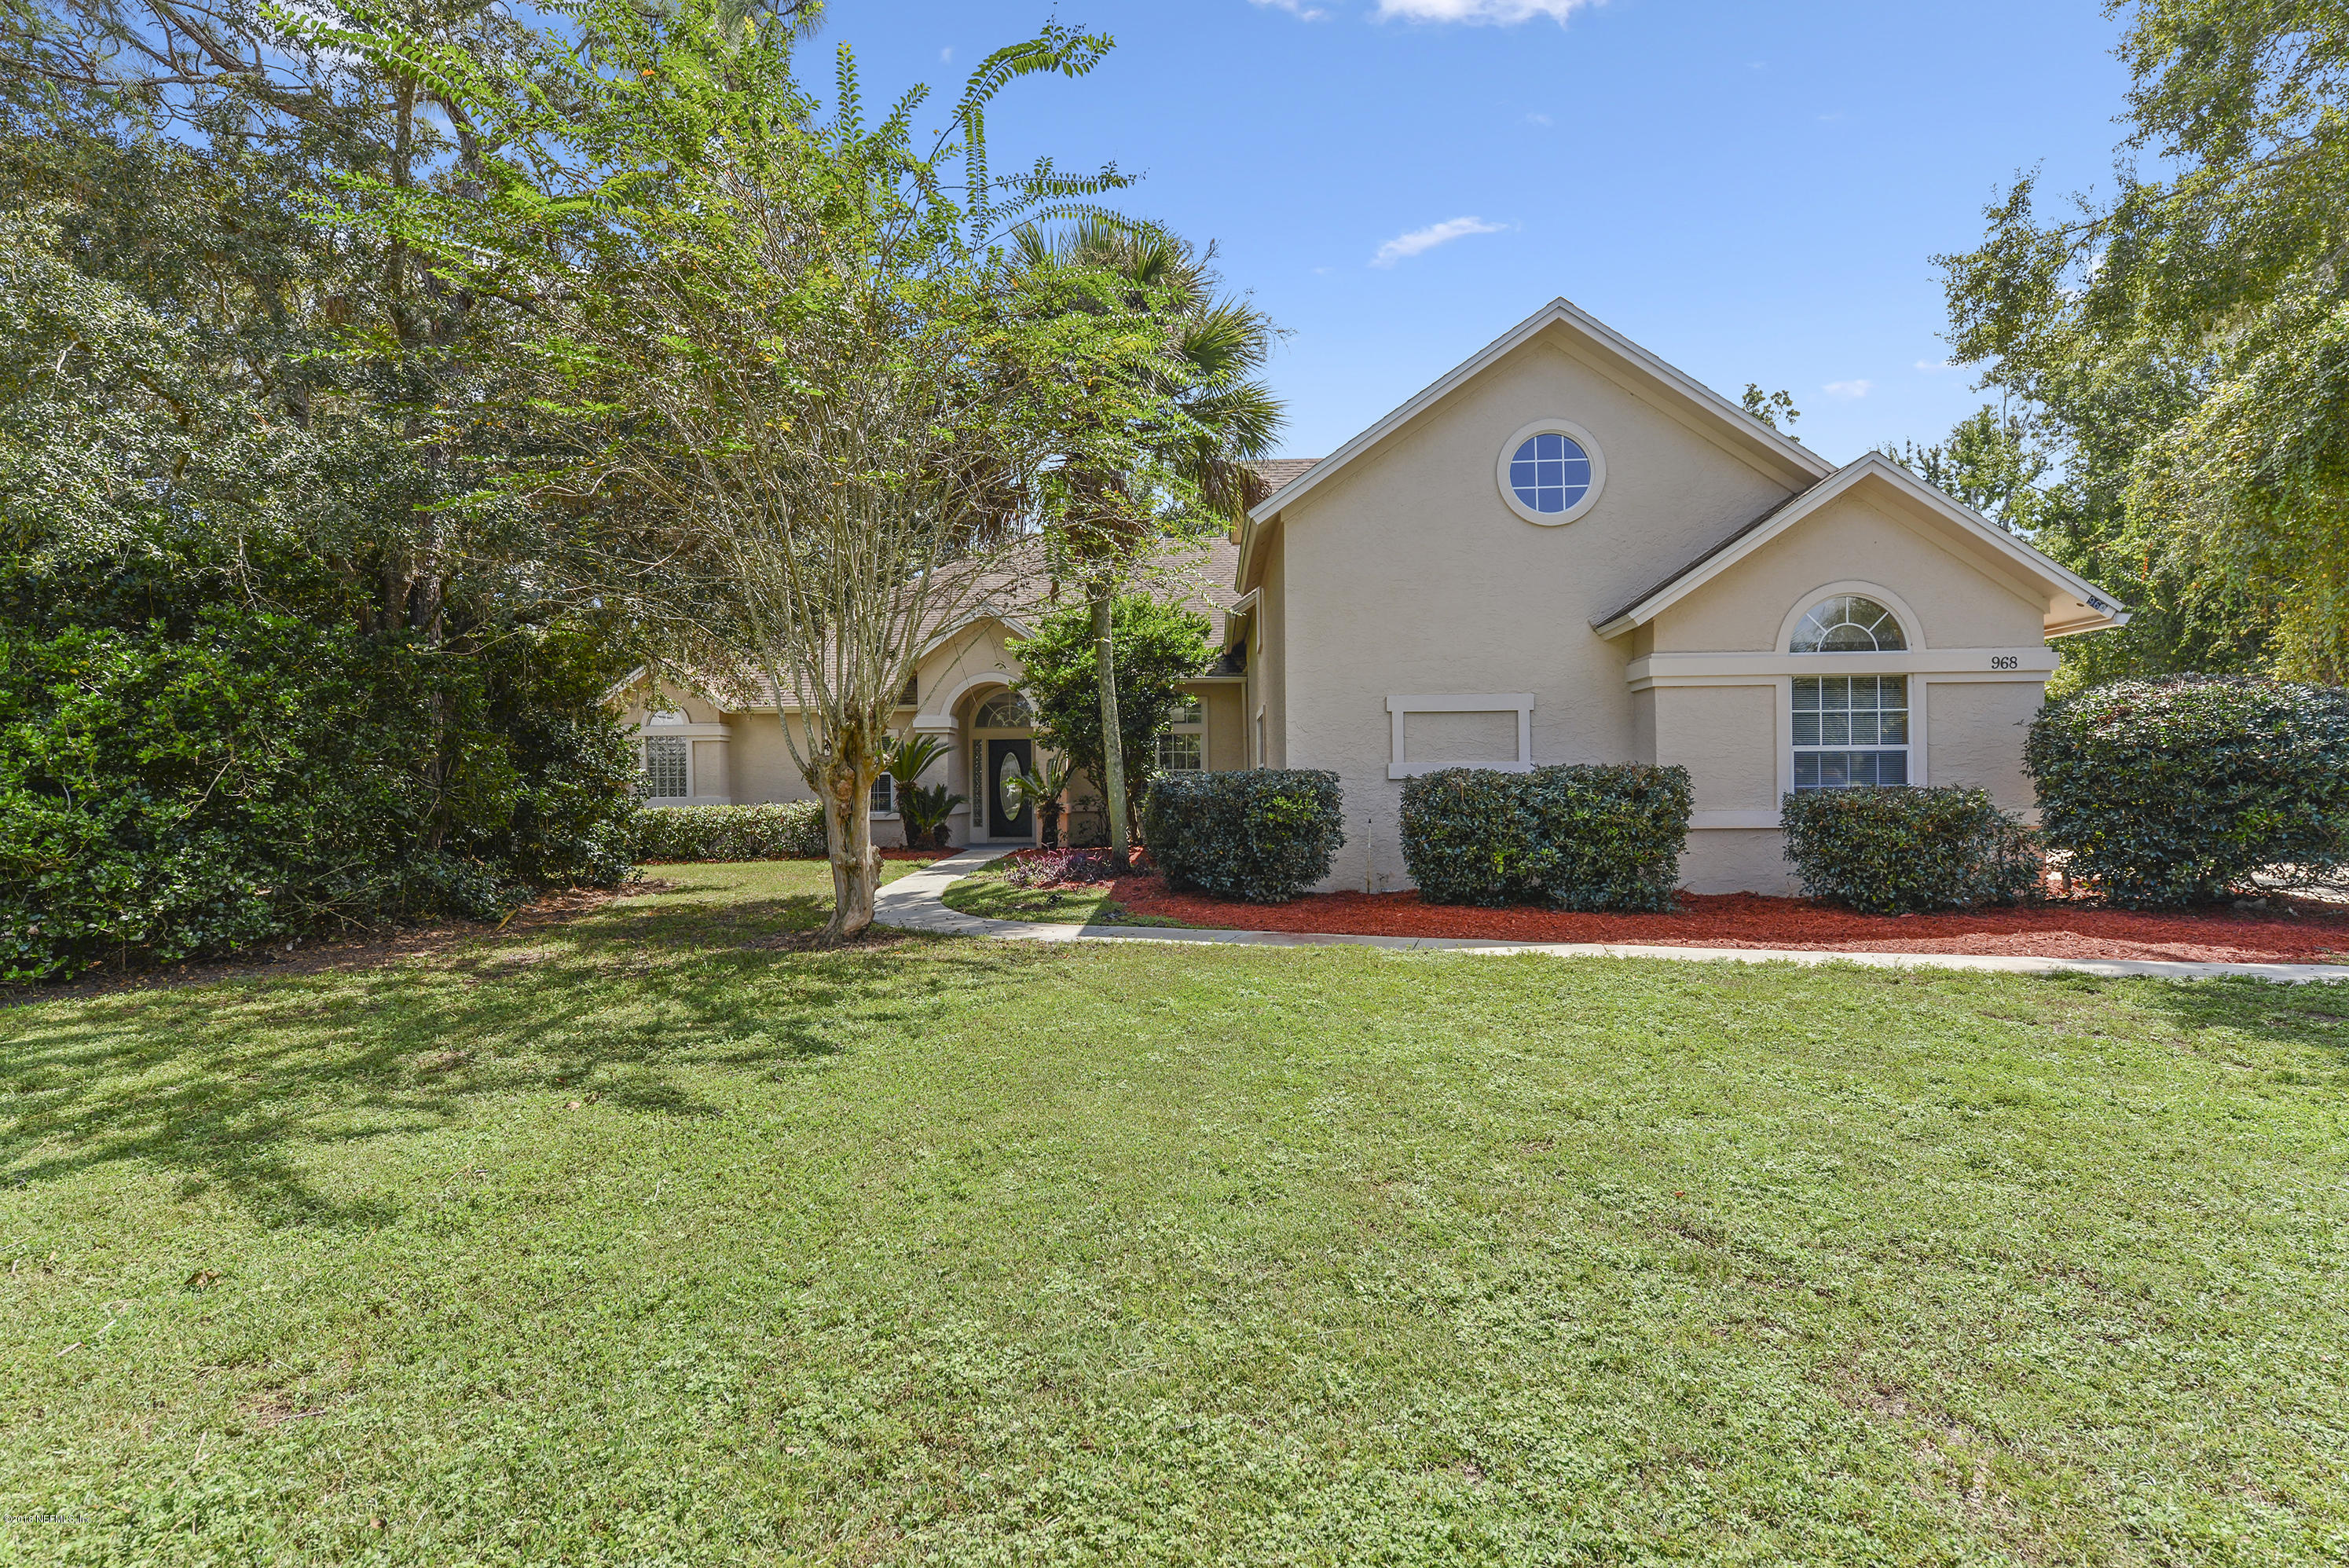 968 DEWBERRY, ST JOHNS, FLORIDA 32259, 4 Bedrooms Bedrooms, ,2 BathroomsBathrooms,Residential - single family,For sale,DEWBERRY,959210